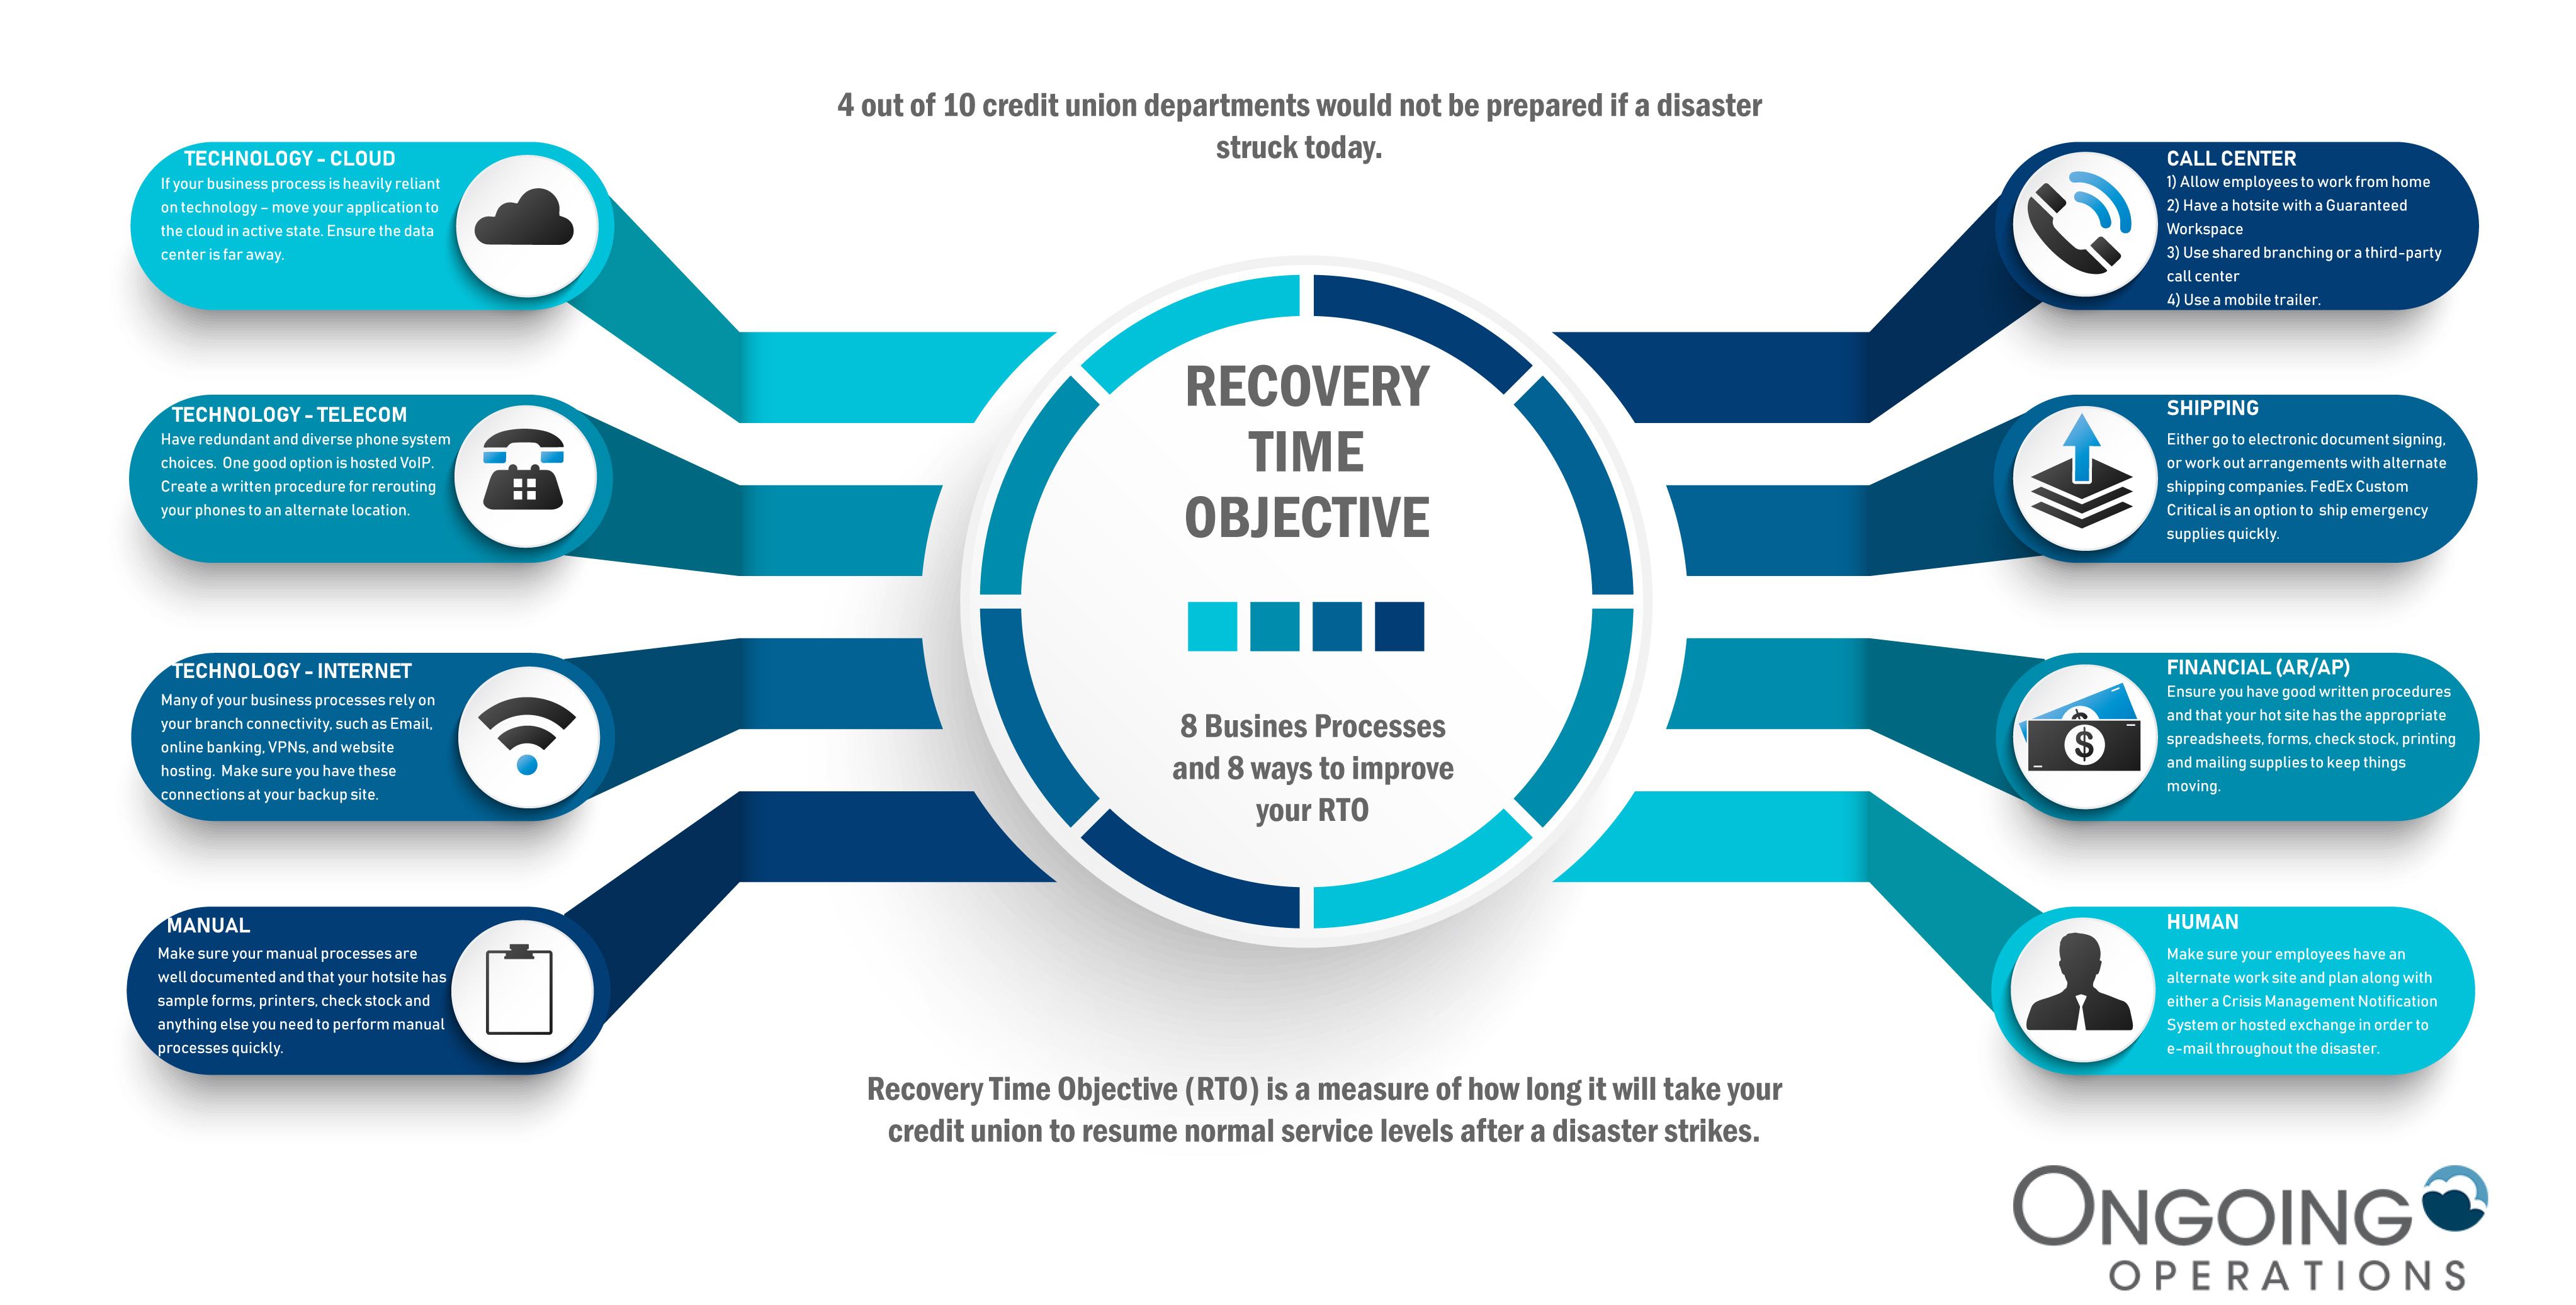 recovery time objectives for credit unions